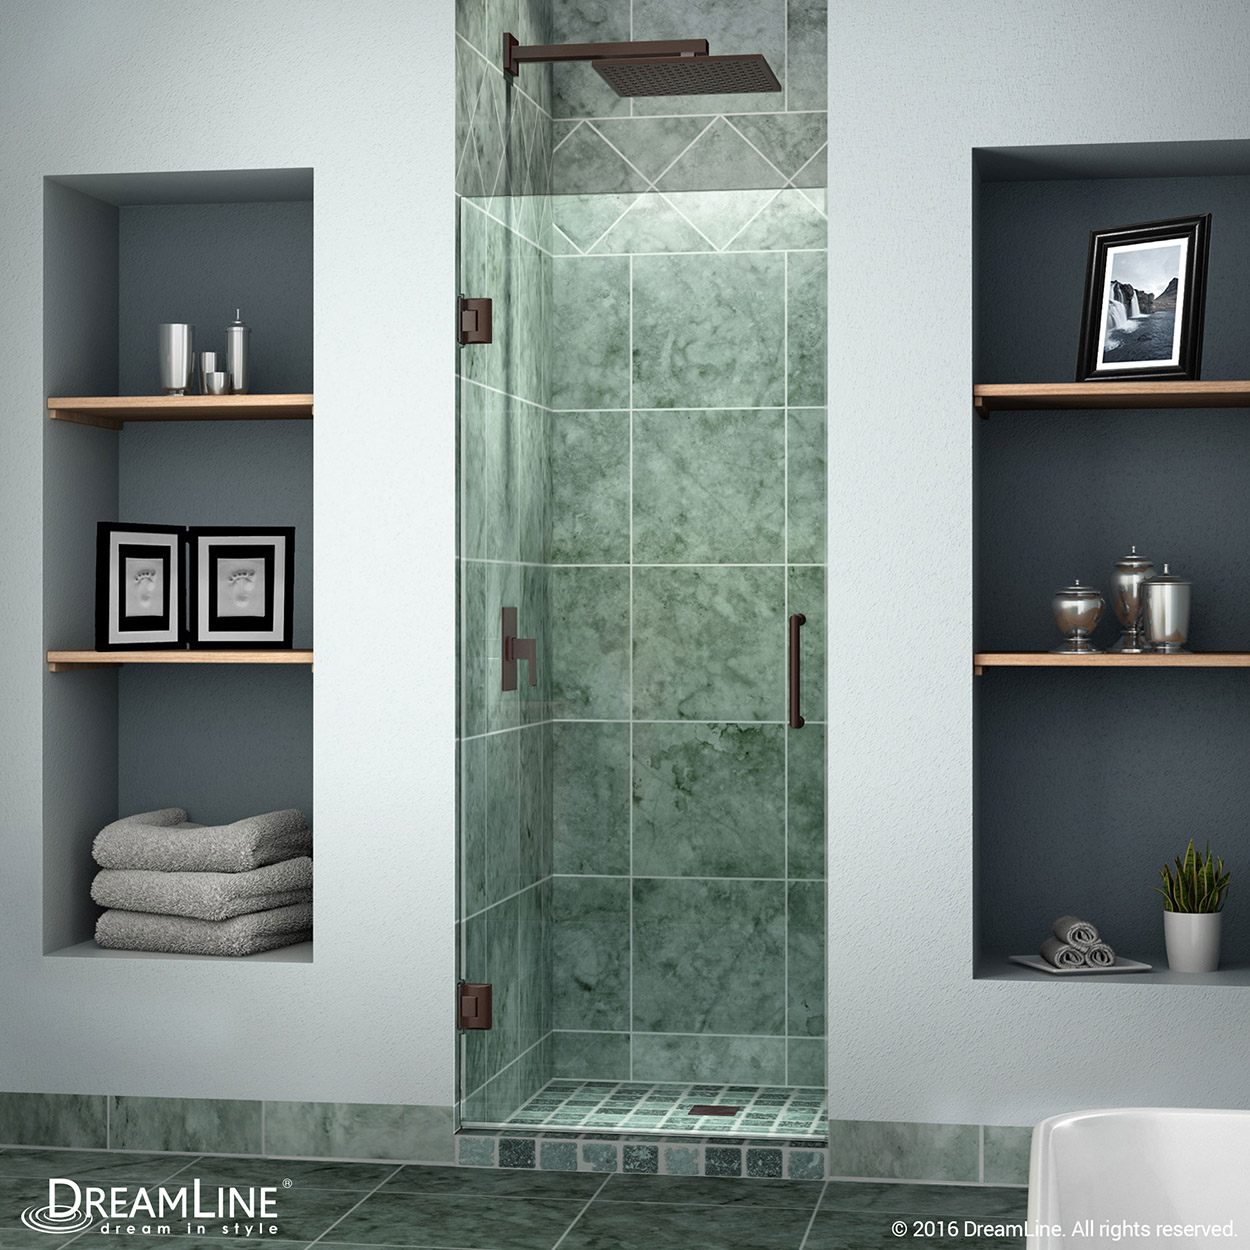 Details About Dreamline Shdr 20247210f 06 Unidoor 24 Frameless Shower Door Oil Rubbed Bronze